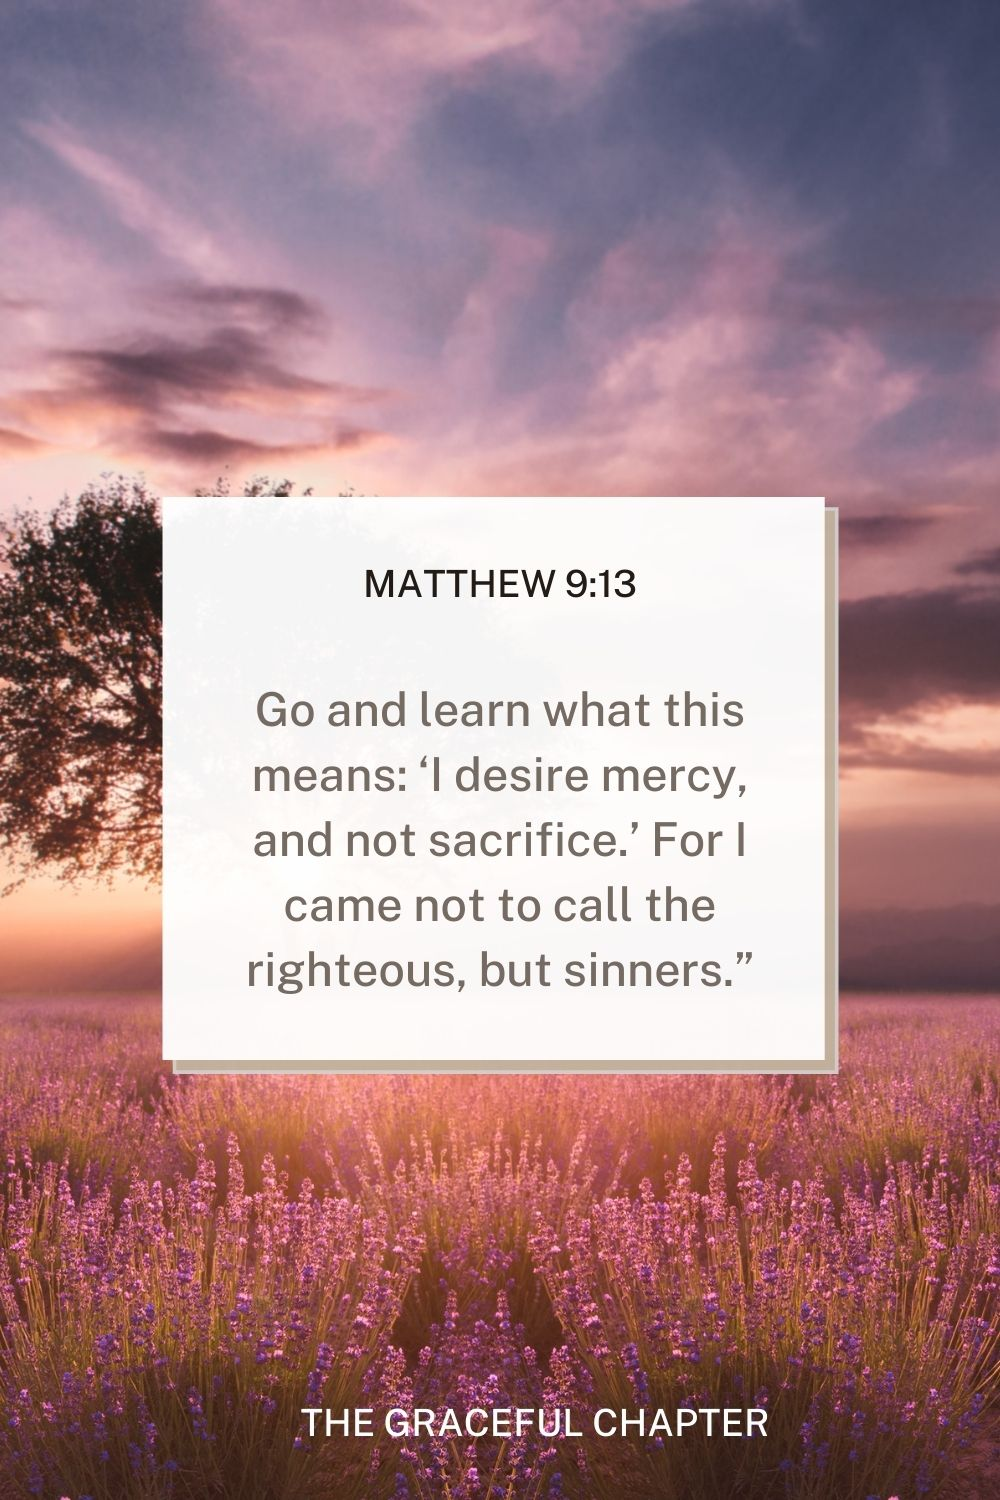 """Go and learn what this means: 'I desire mercy, and not sacrifice.' For I came not to call the righteous, but sinners."""" Matthew 9:13"""